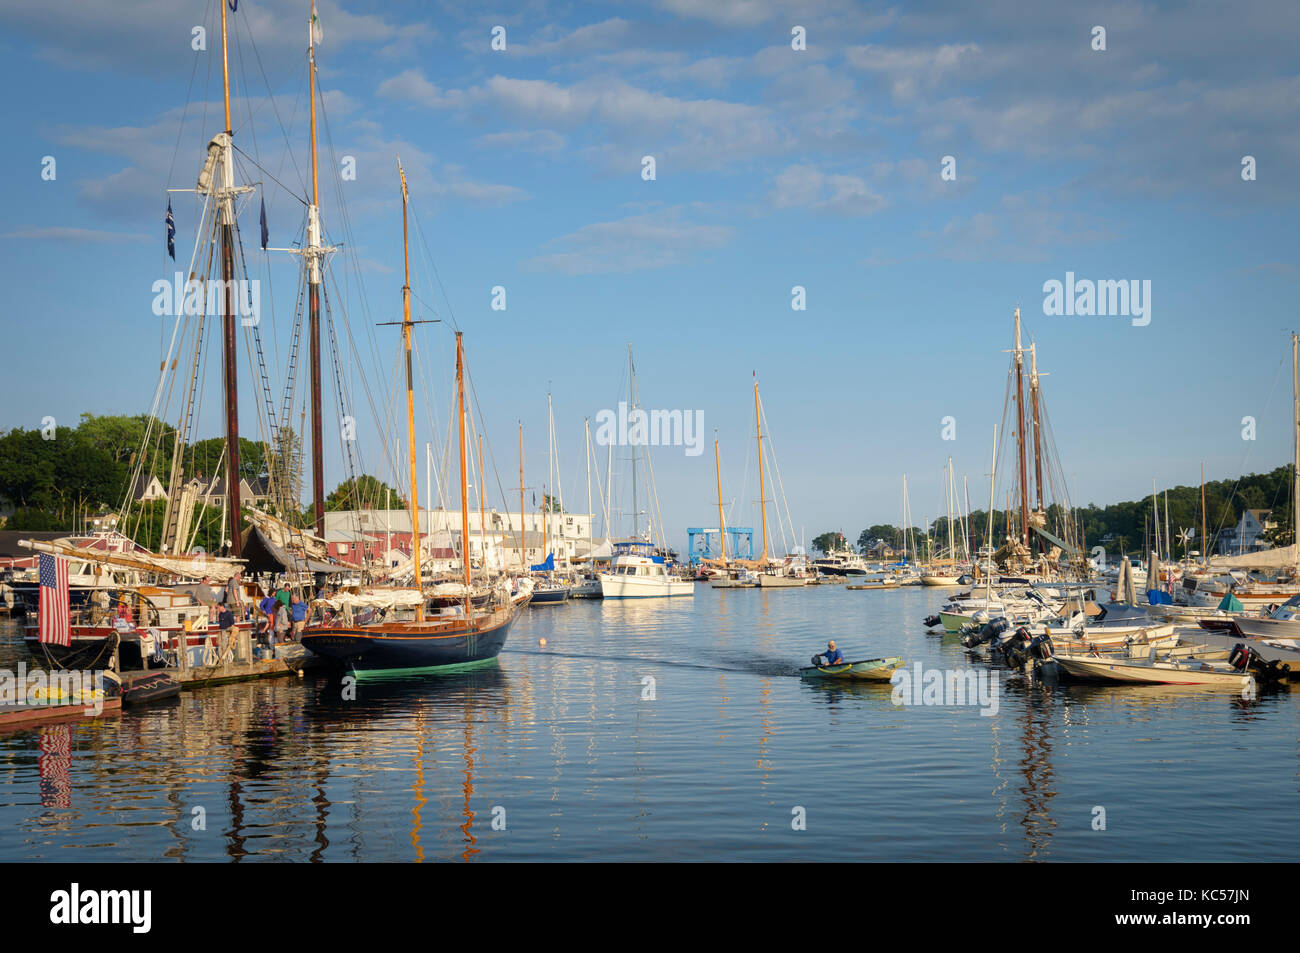 View of the Harbor at Camden Maine. - Stock Image